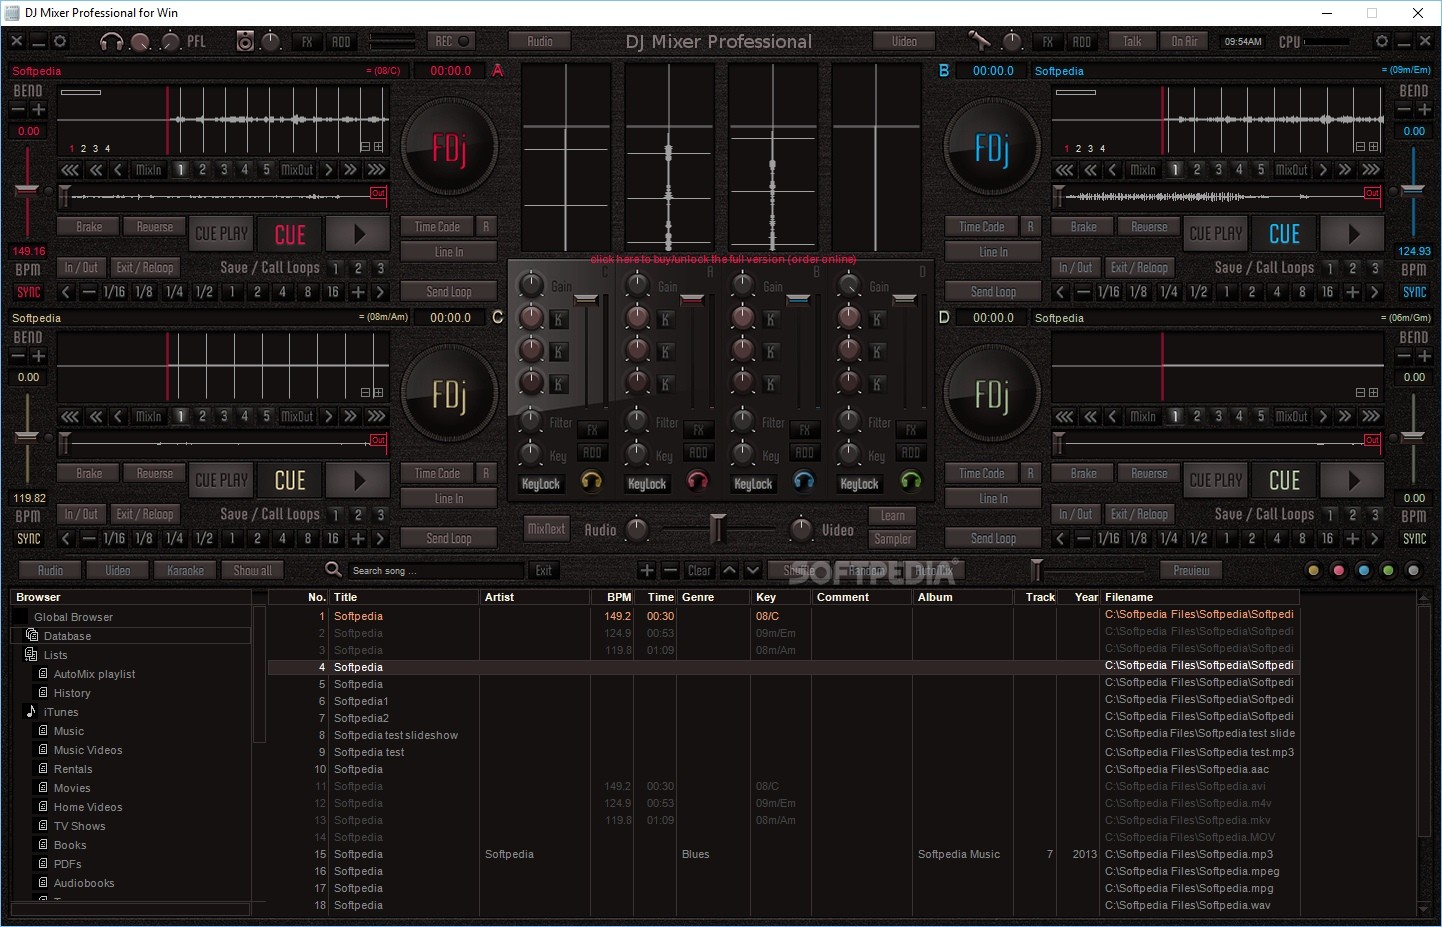 dj mixer professional - photo #1